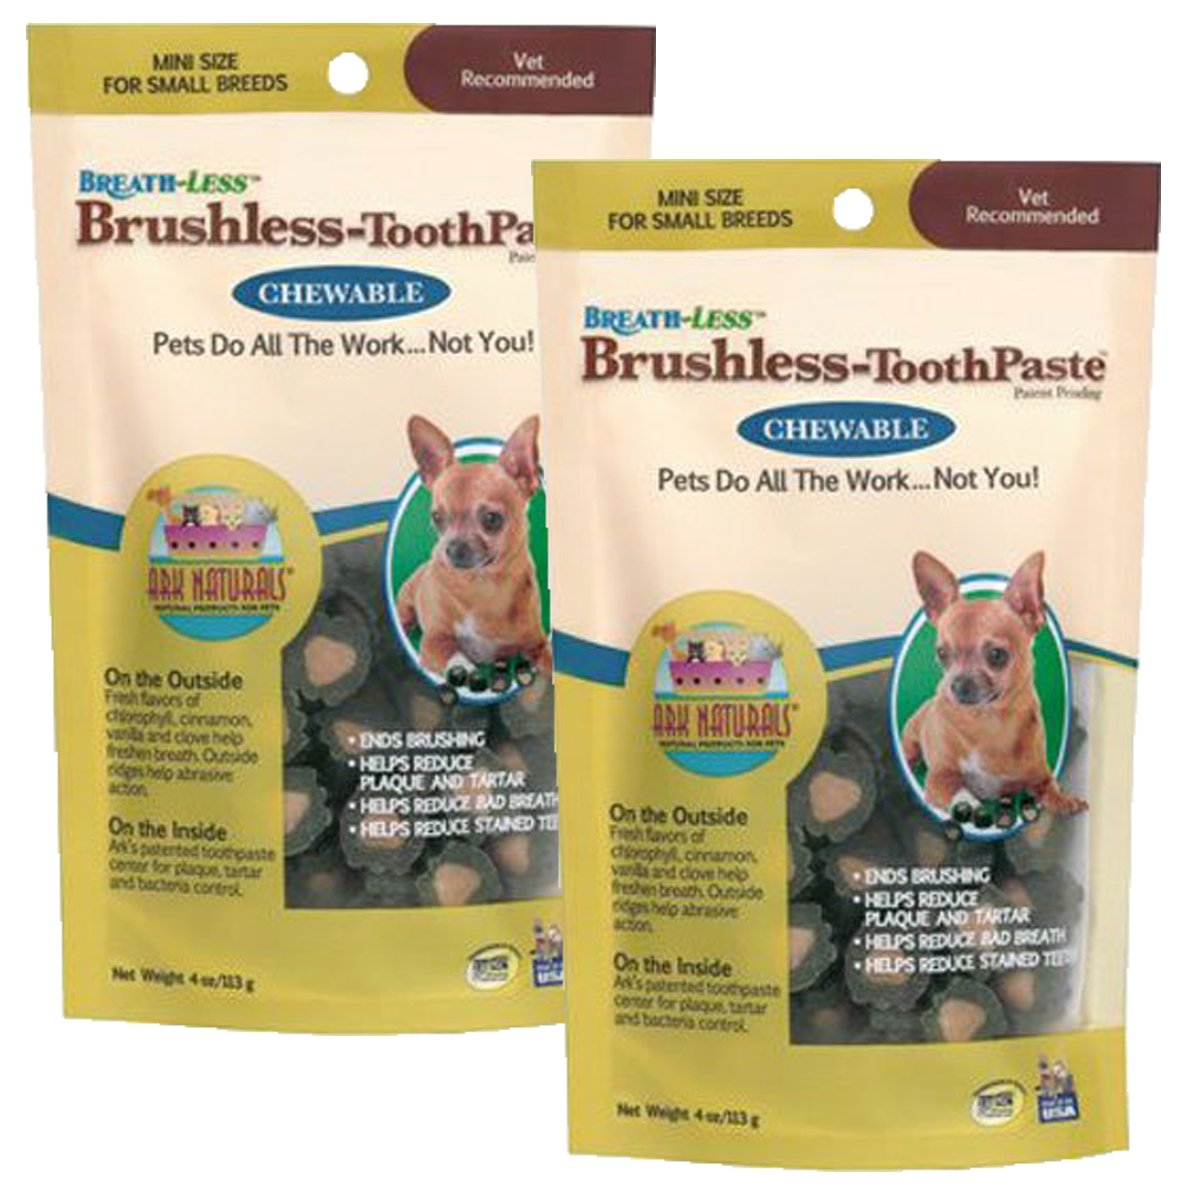 ARK Naturals PRODUCTS for PETS 326066 4-Ounce Breath-Less Chewable Brushless Toothpaste, Mini